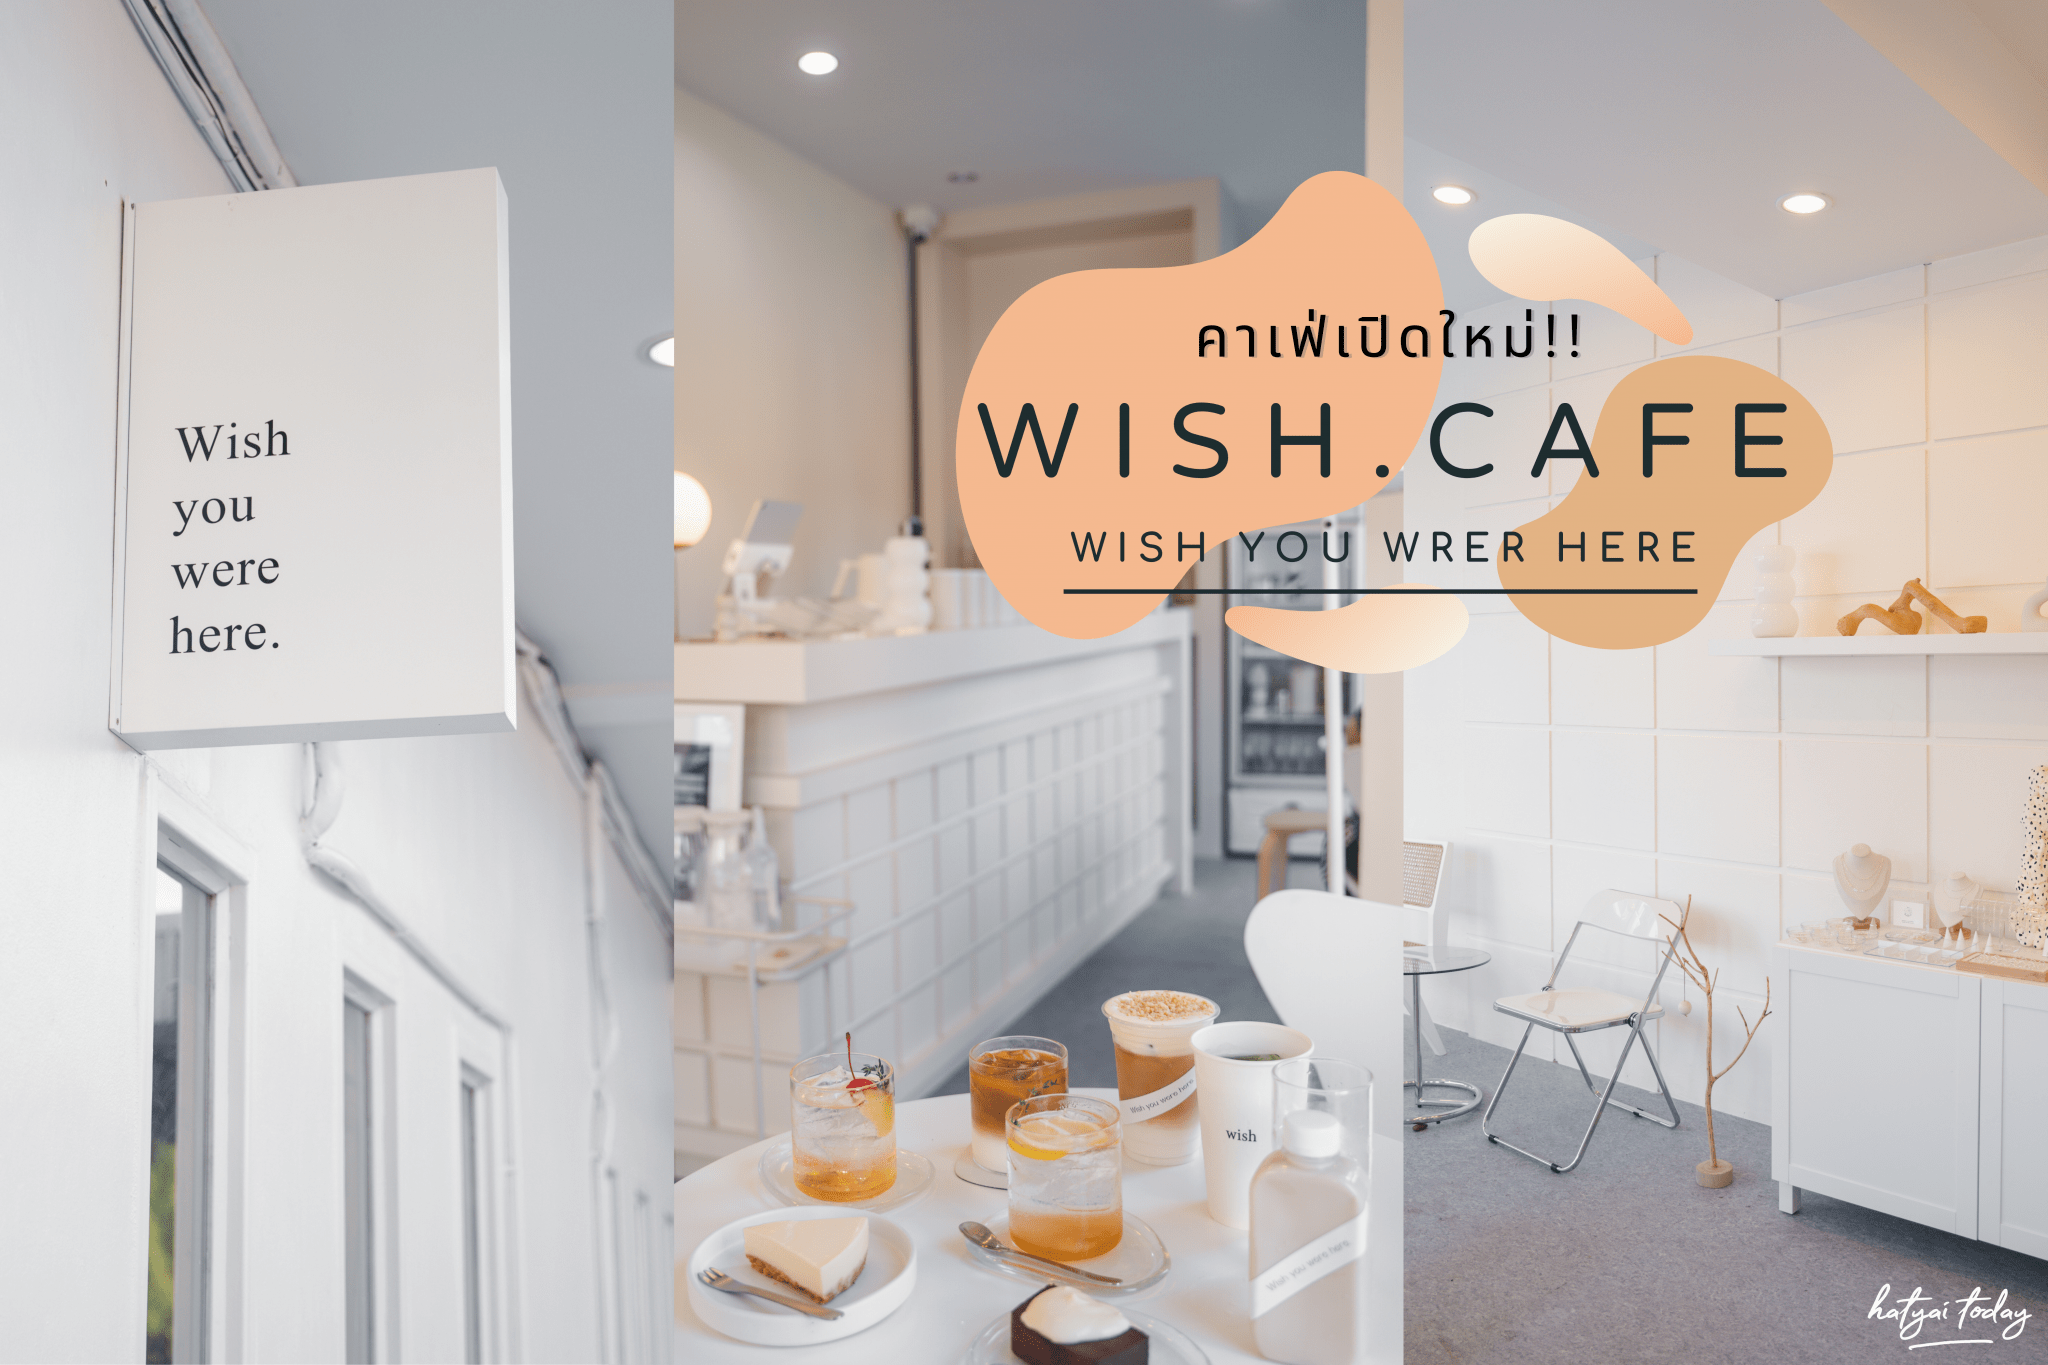 Wish cafe Hatyai